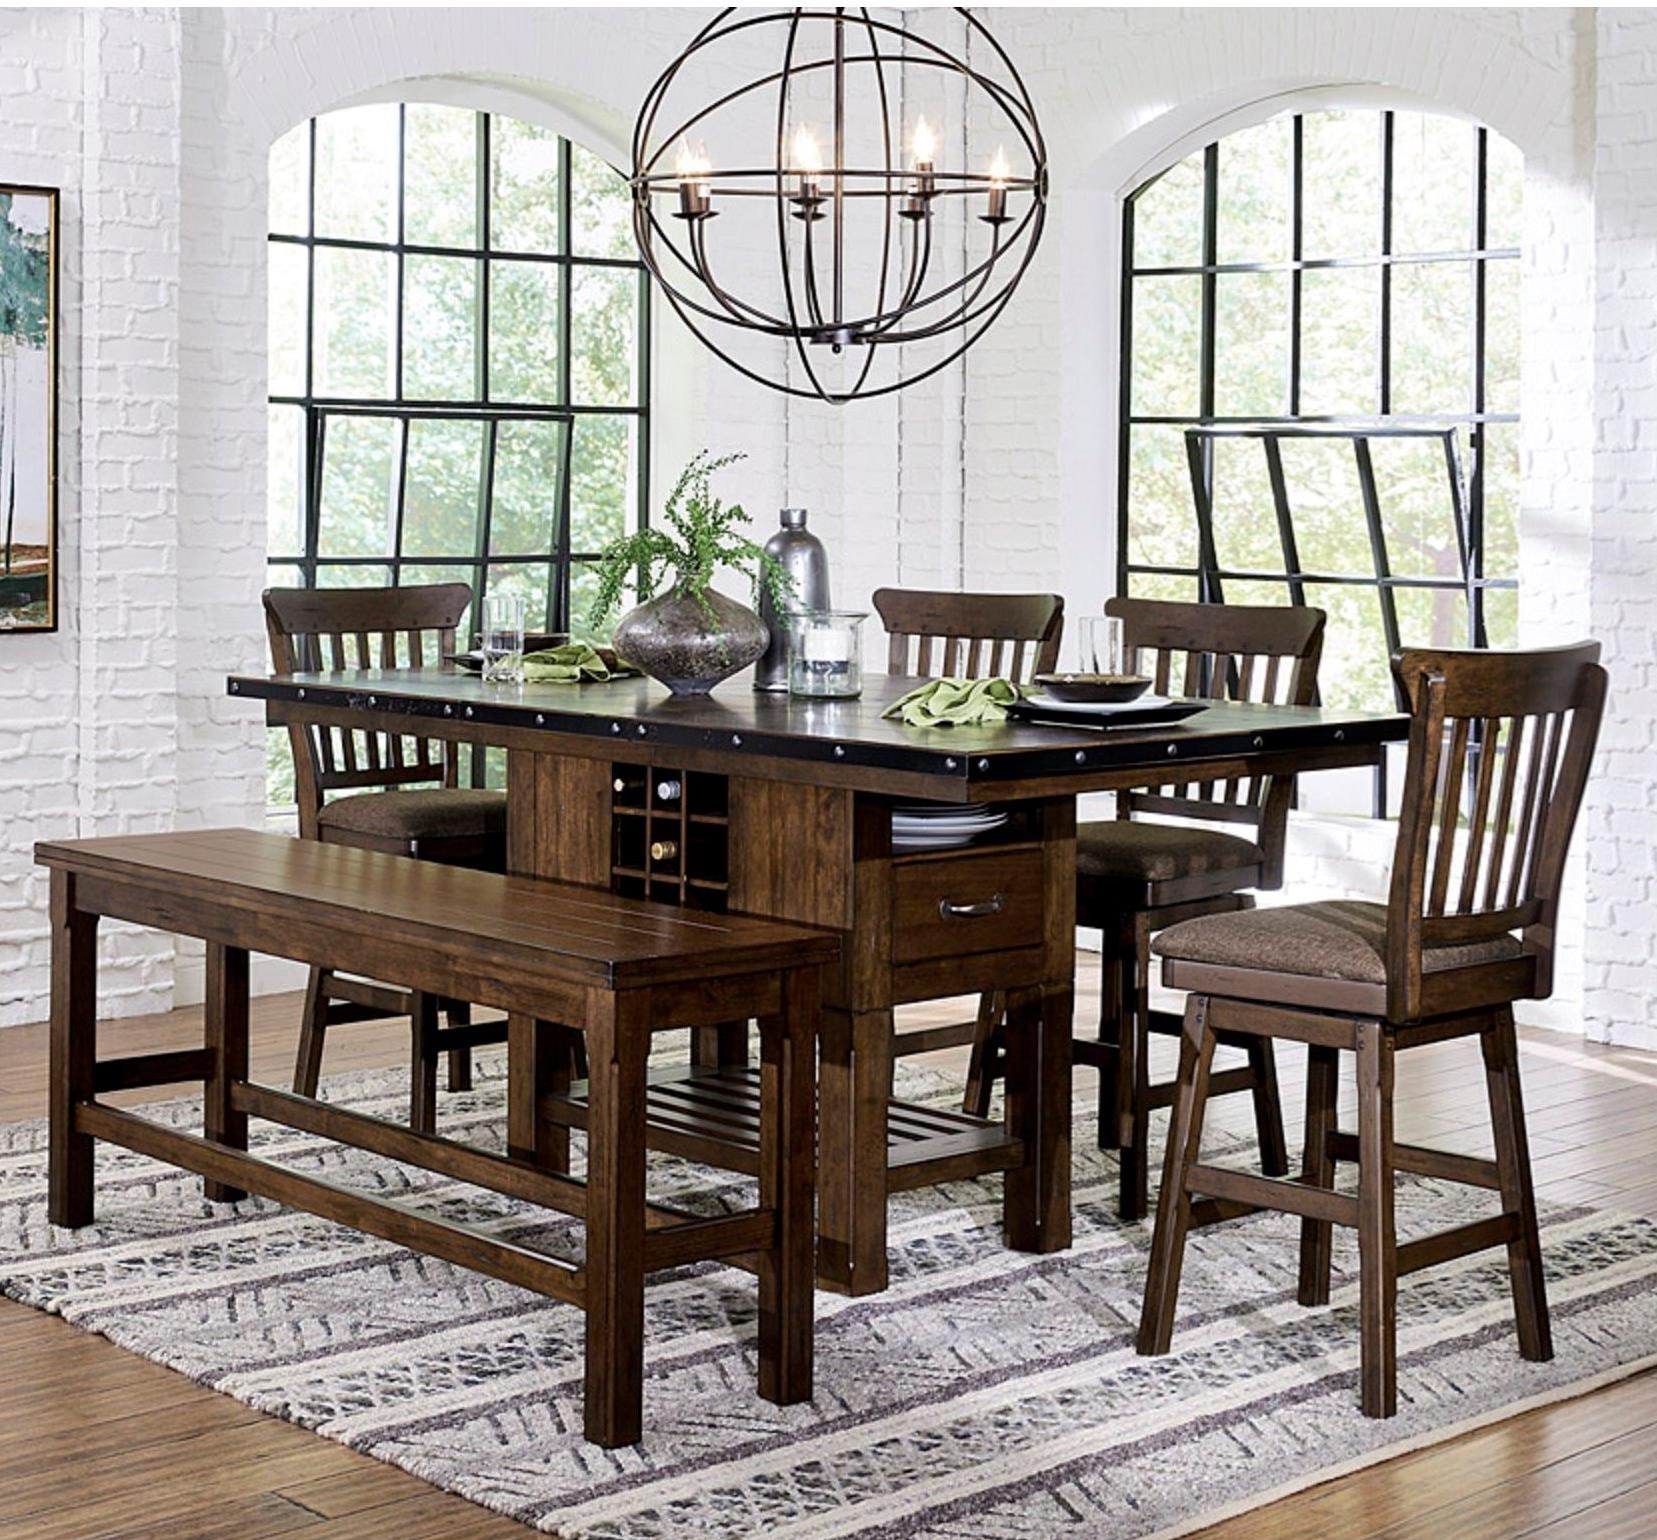 Schleiger Table and Chair Set with Bench by Homelegance at Lindy's Furniture Company